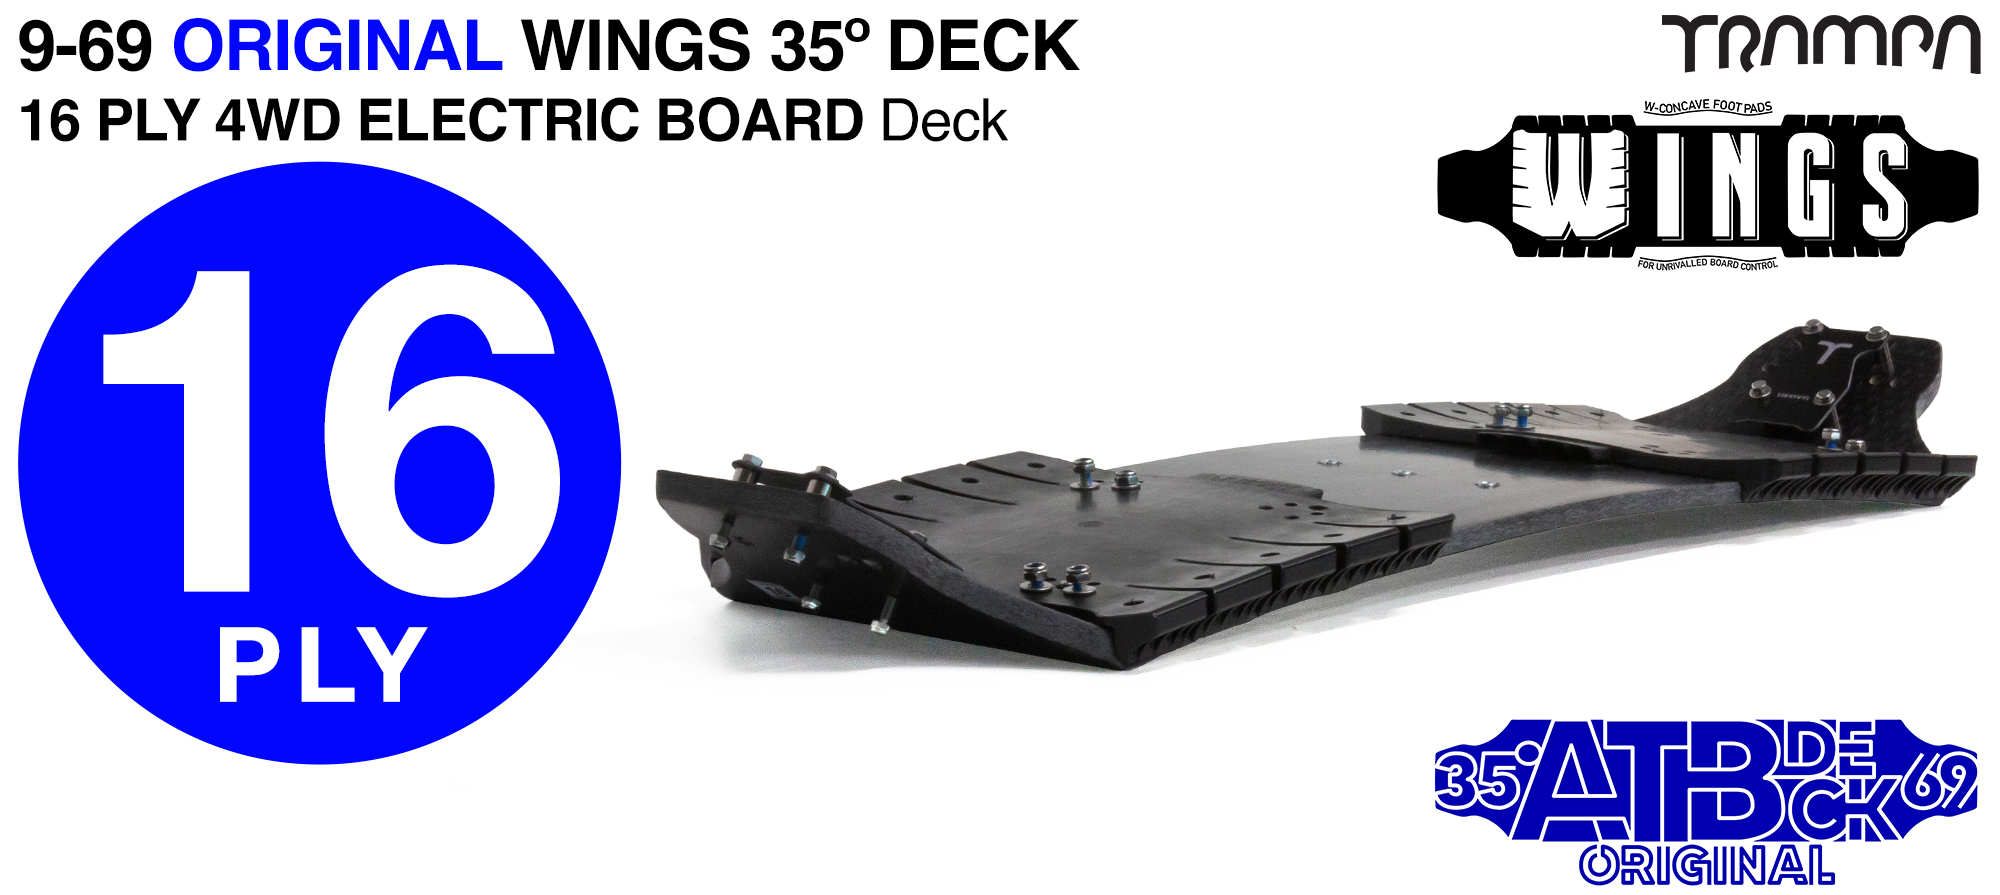 35° 9/69 TRAMPA 4WD-E WING Deck - Fix the WINGS to the deck to add W-Shape concave & the increase the width of the Deck - 16ply